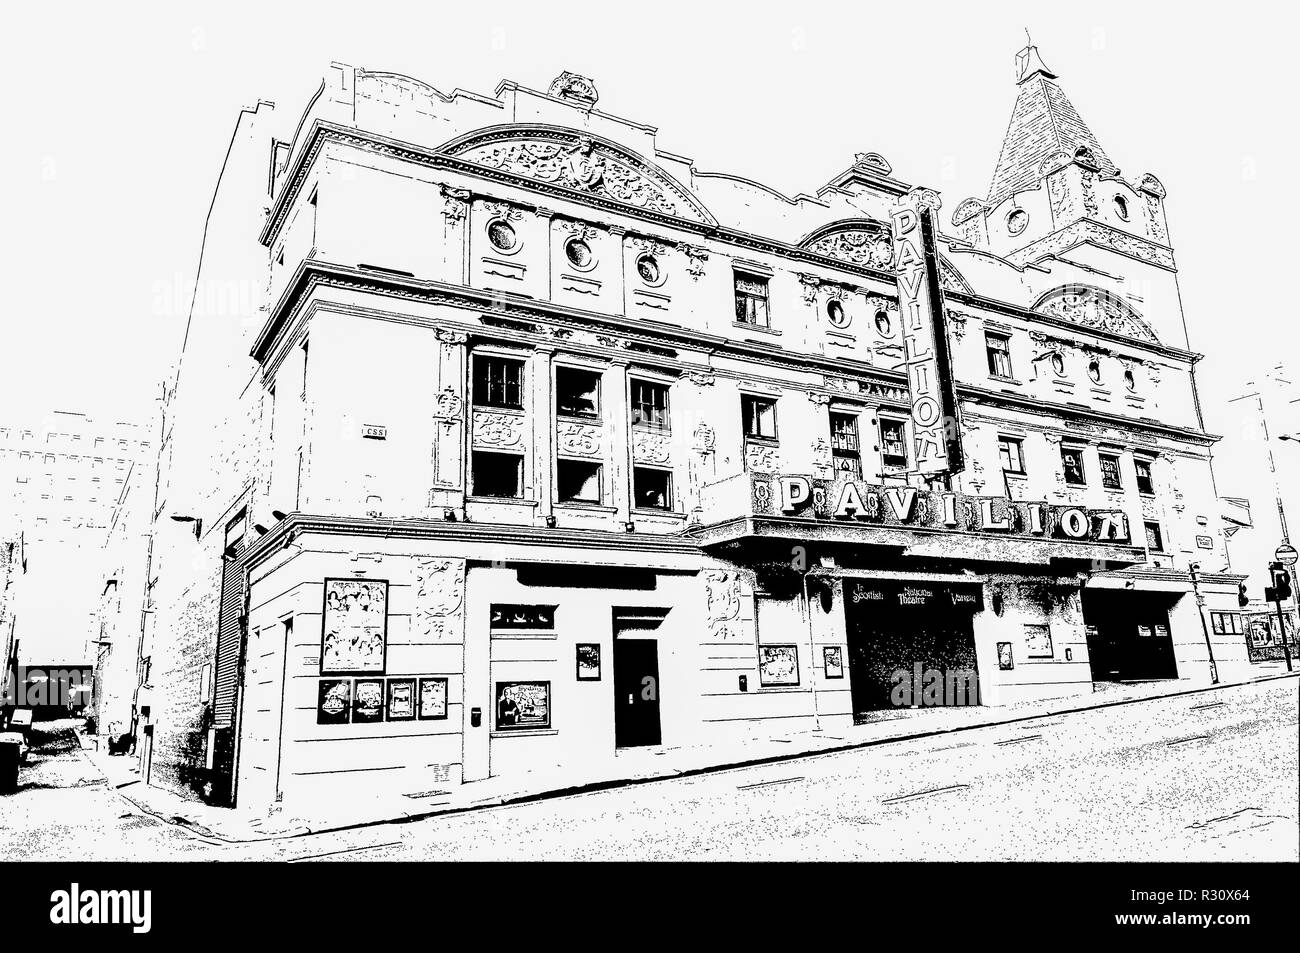 Digital pen & ink sketch of The Pavilion Theatre, Renfield Street, Glasgow, Scotland, UK. Opened in 1904 and is one of the oldest Theatres in Scotland - Stock Image